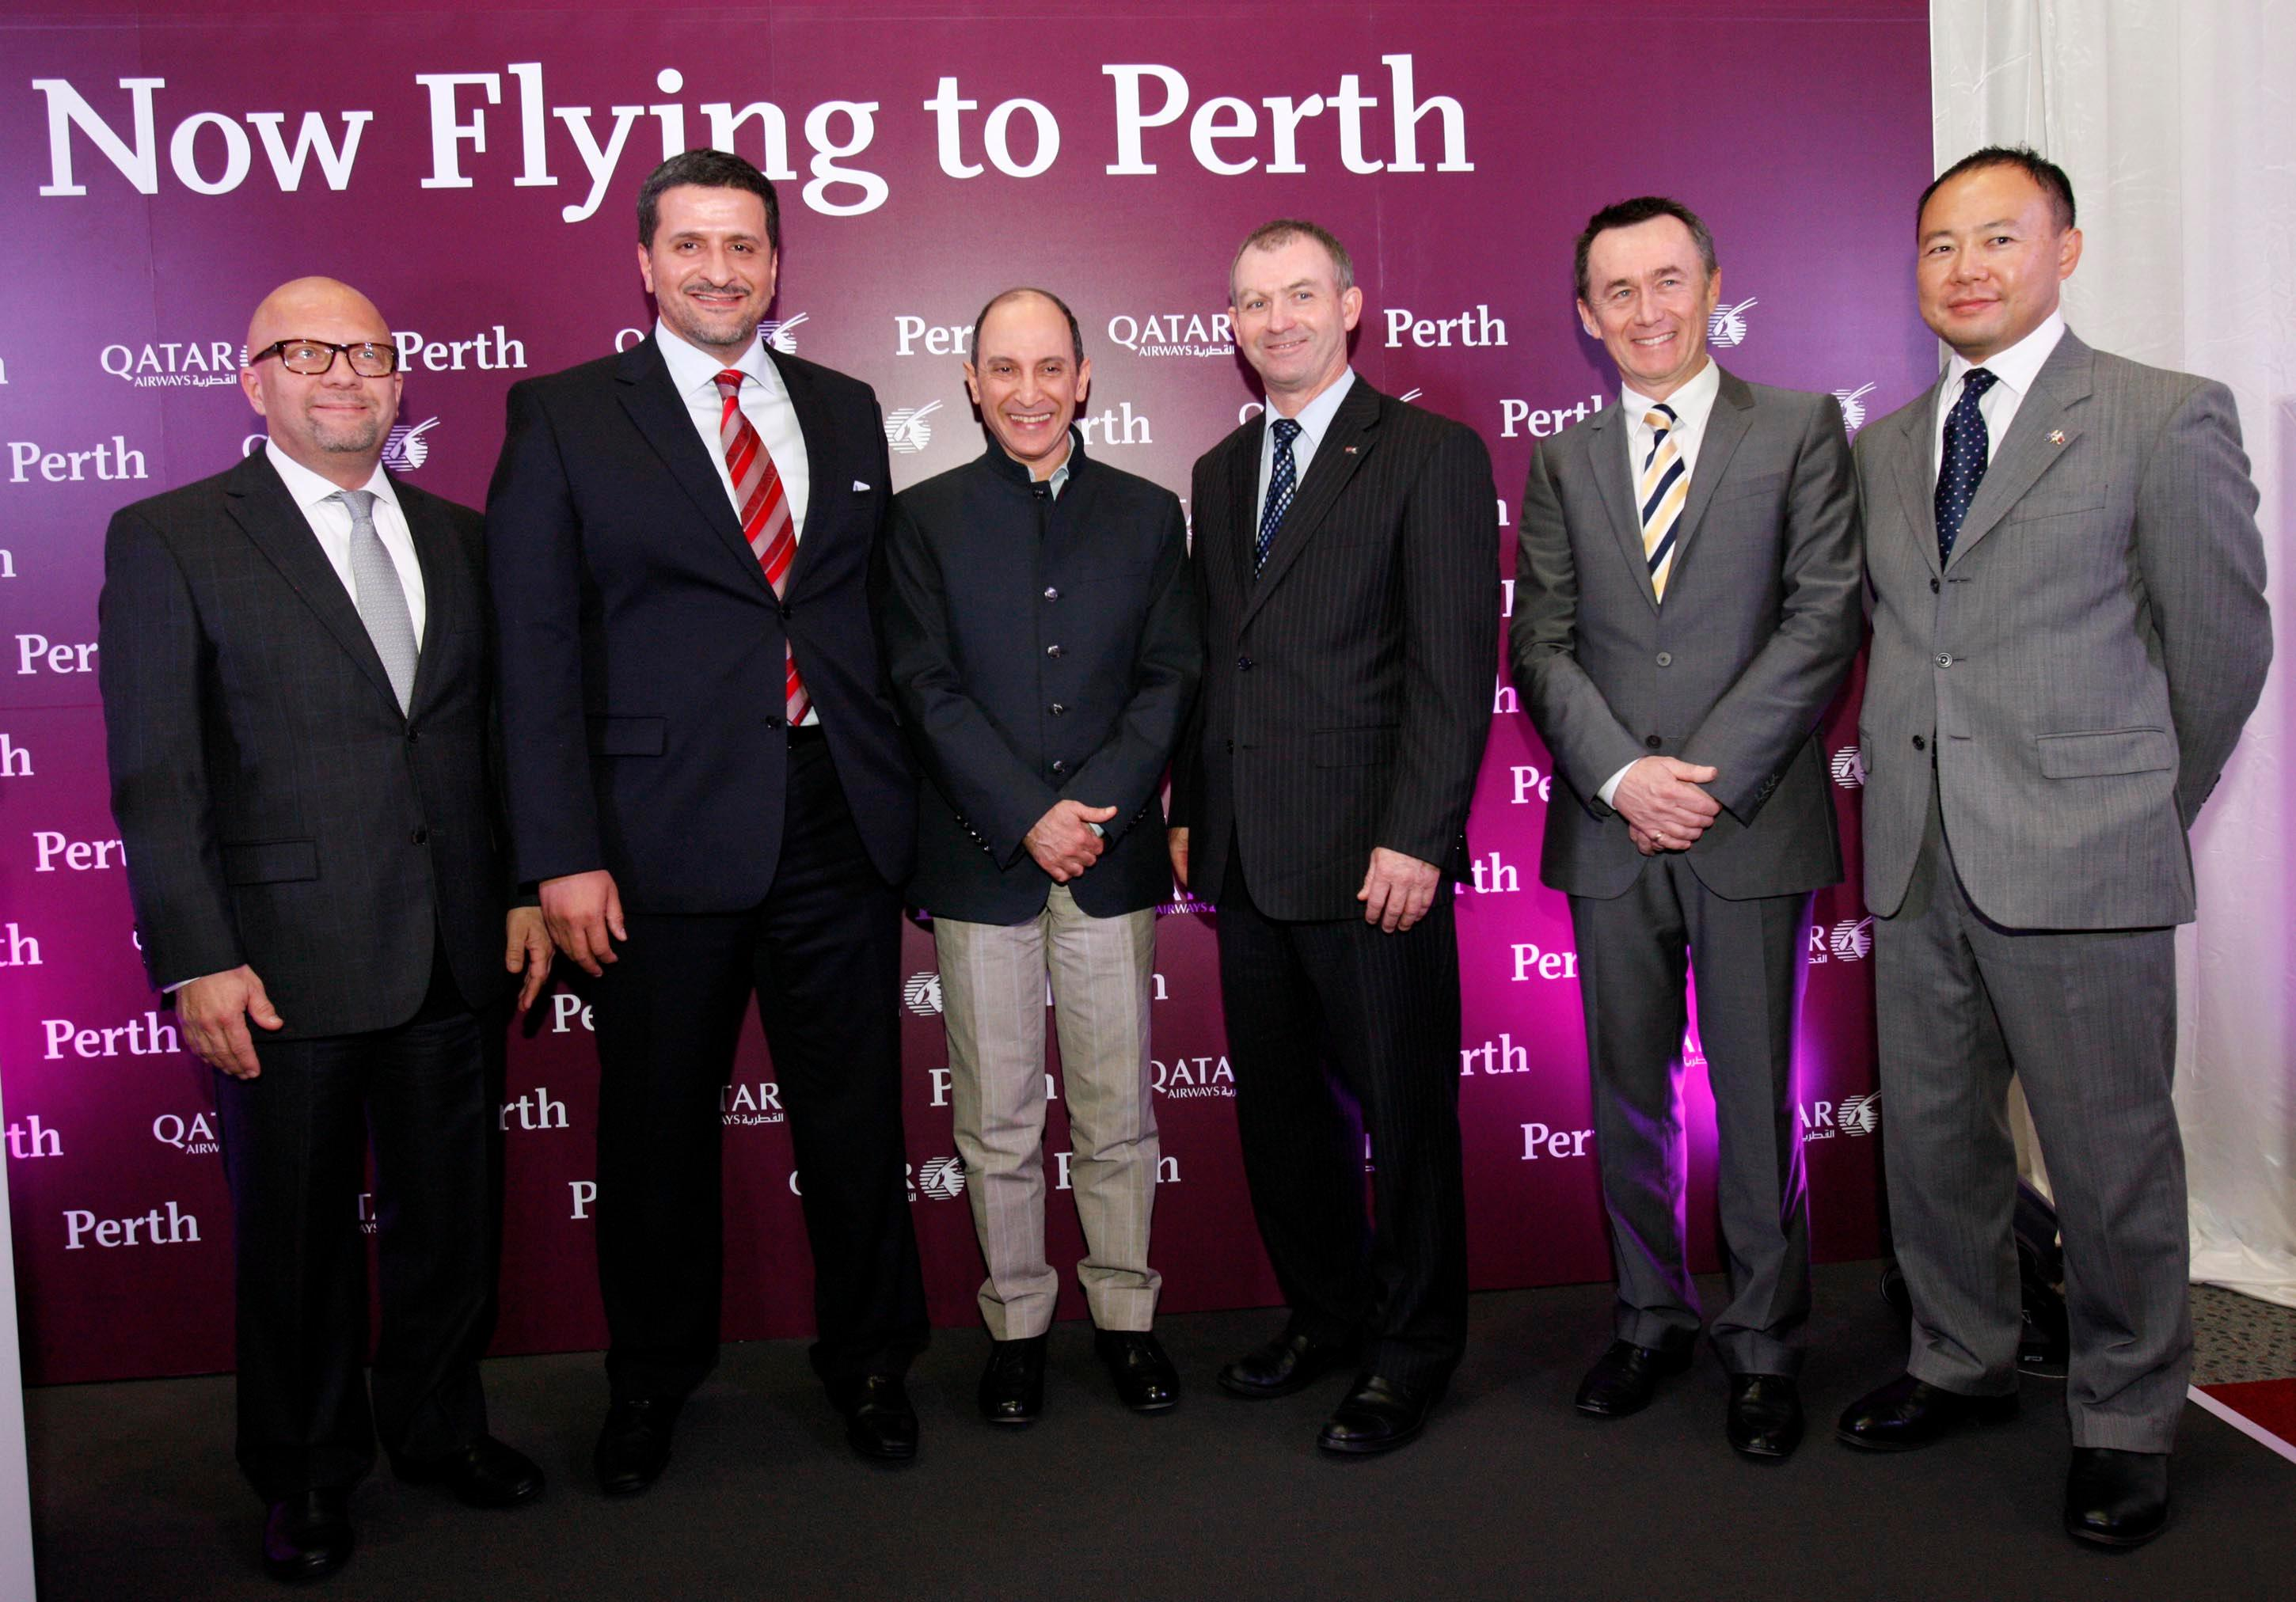 Qatar Airways Celebrates Launch Of Flights To Western Australia